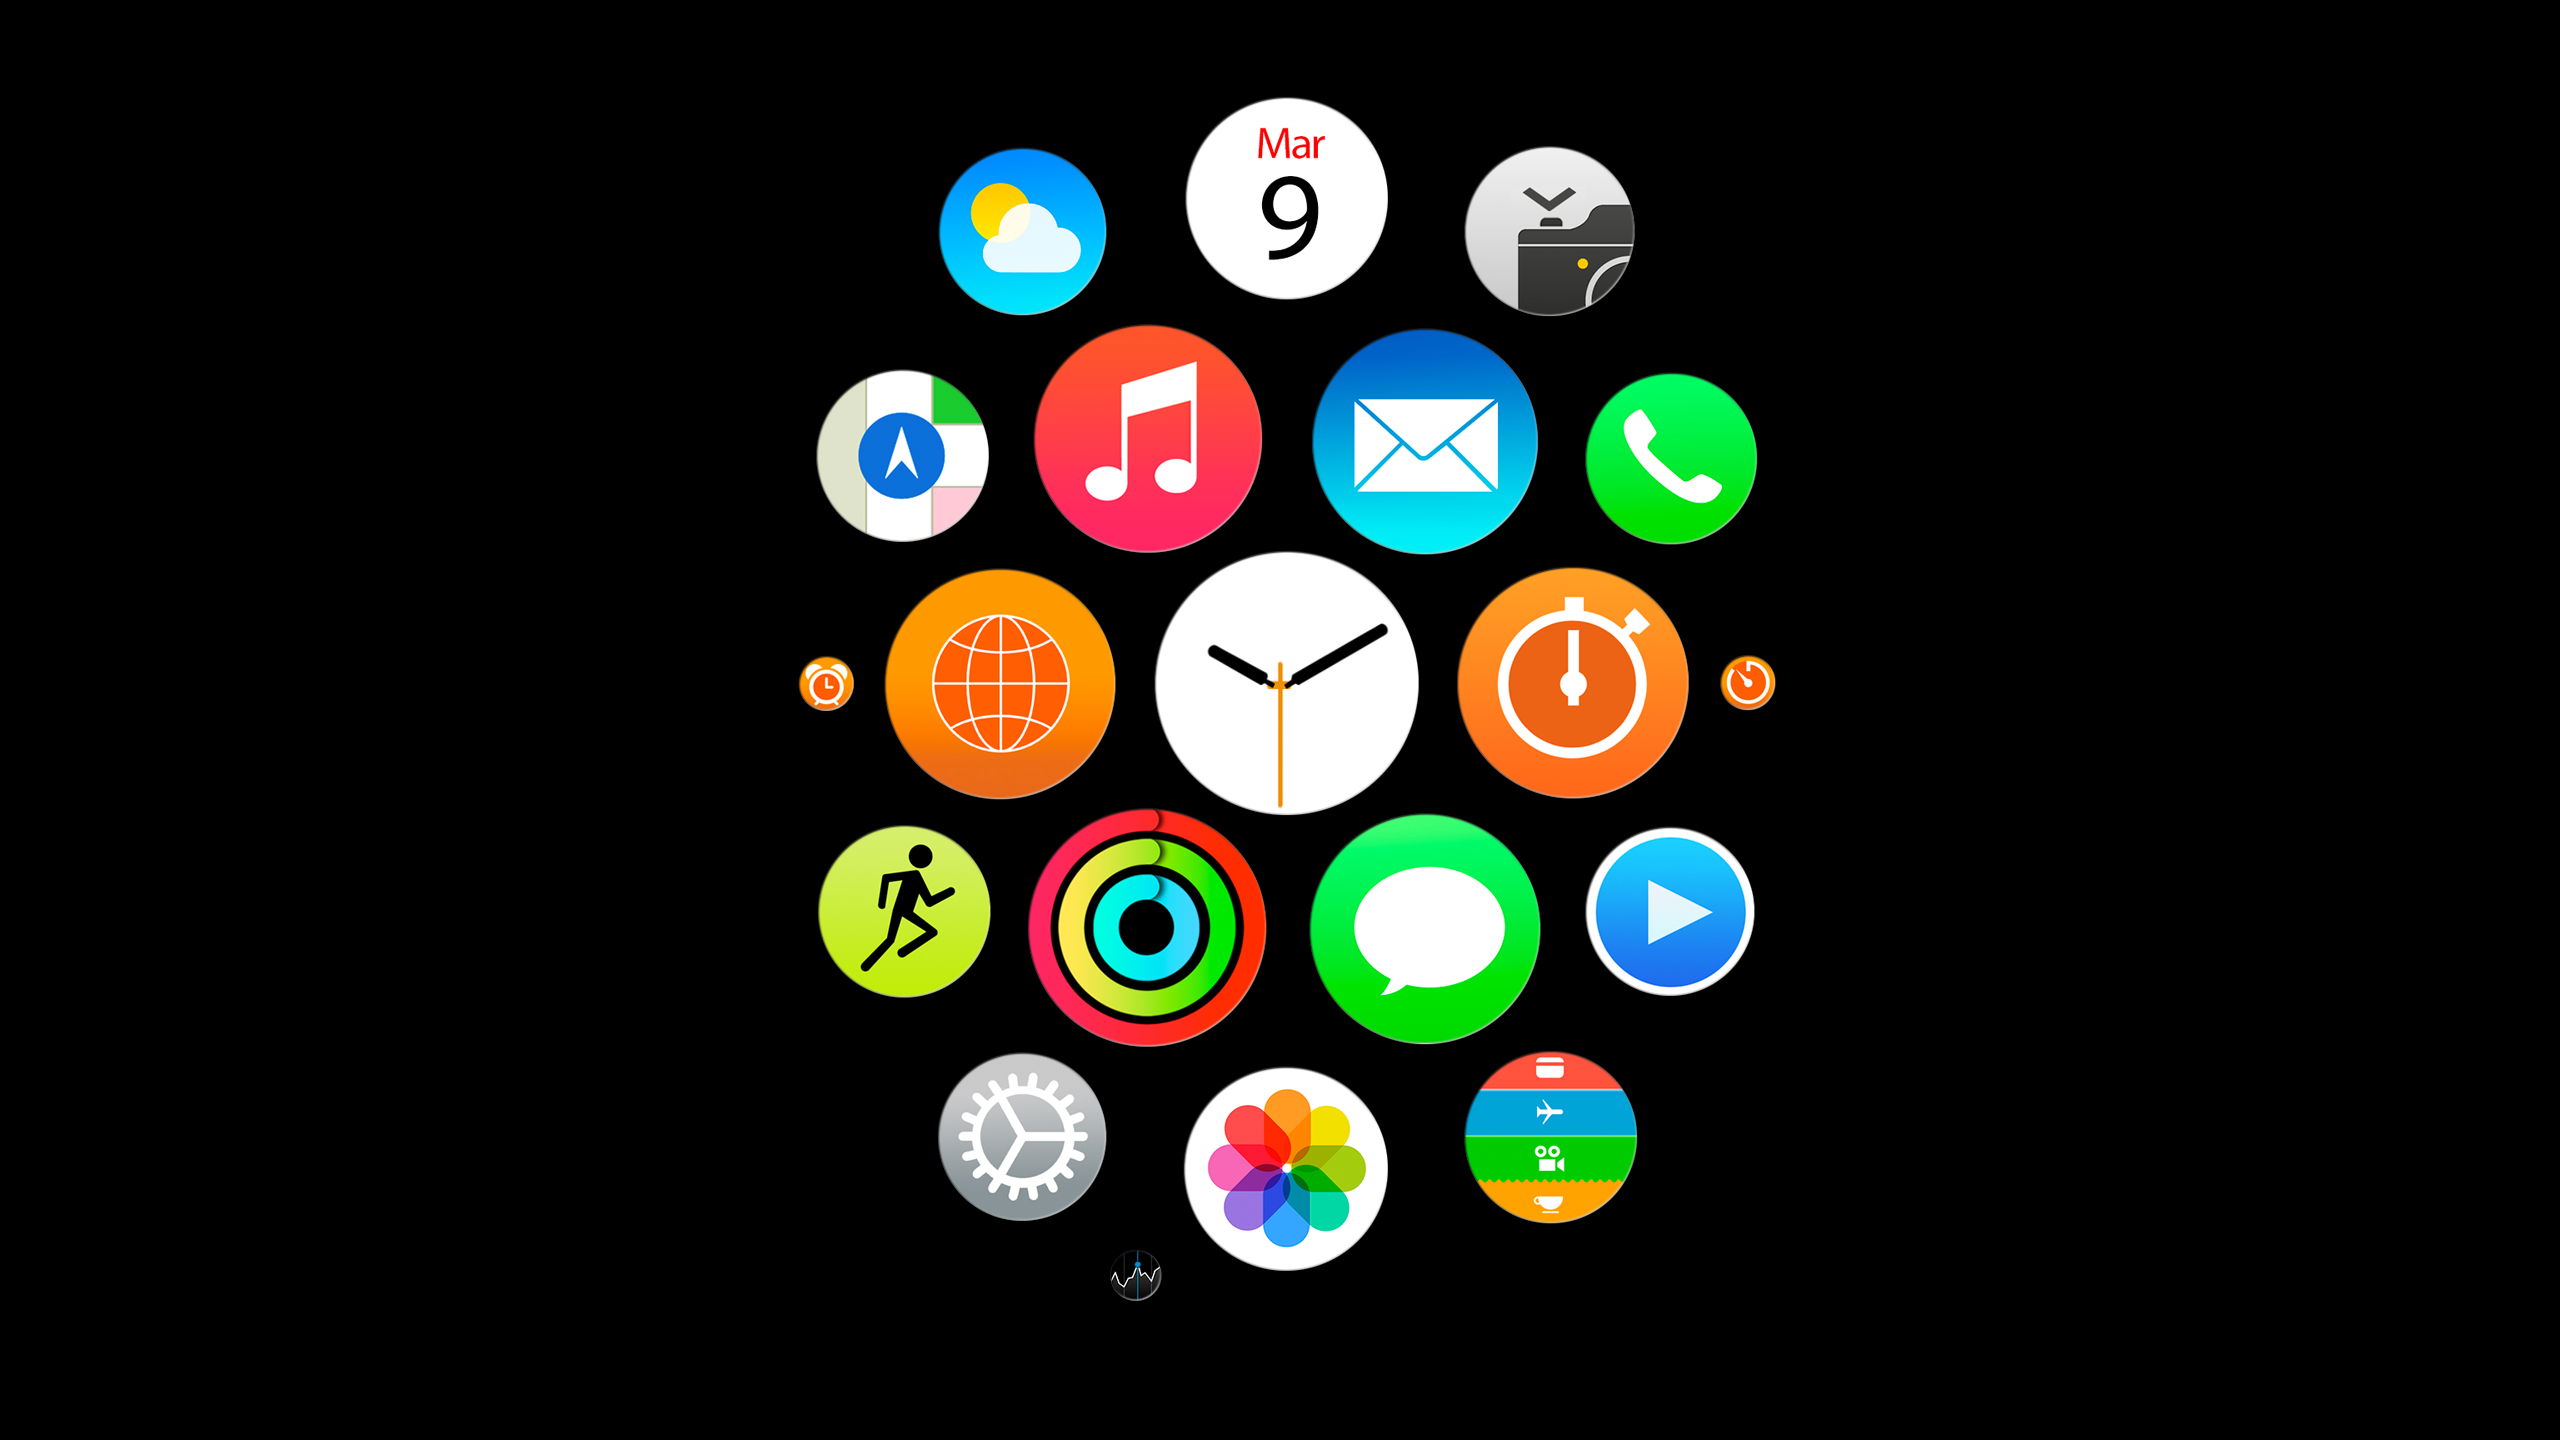 Apple Watch Wallpaper iMacBlack